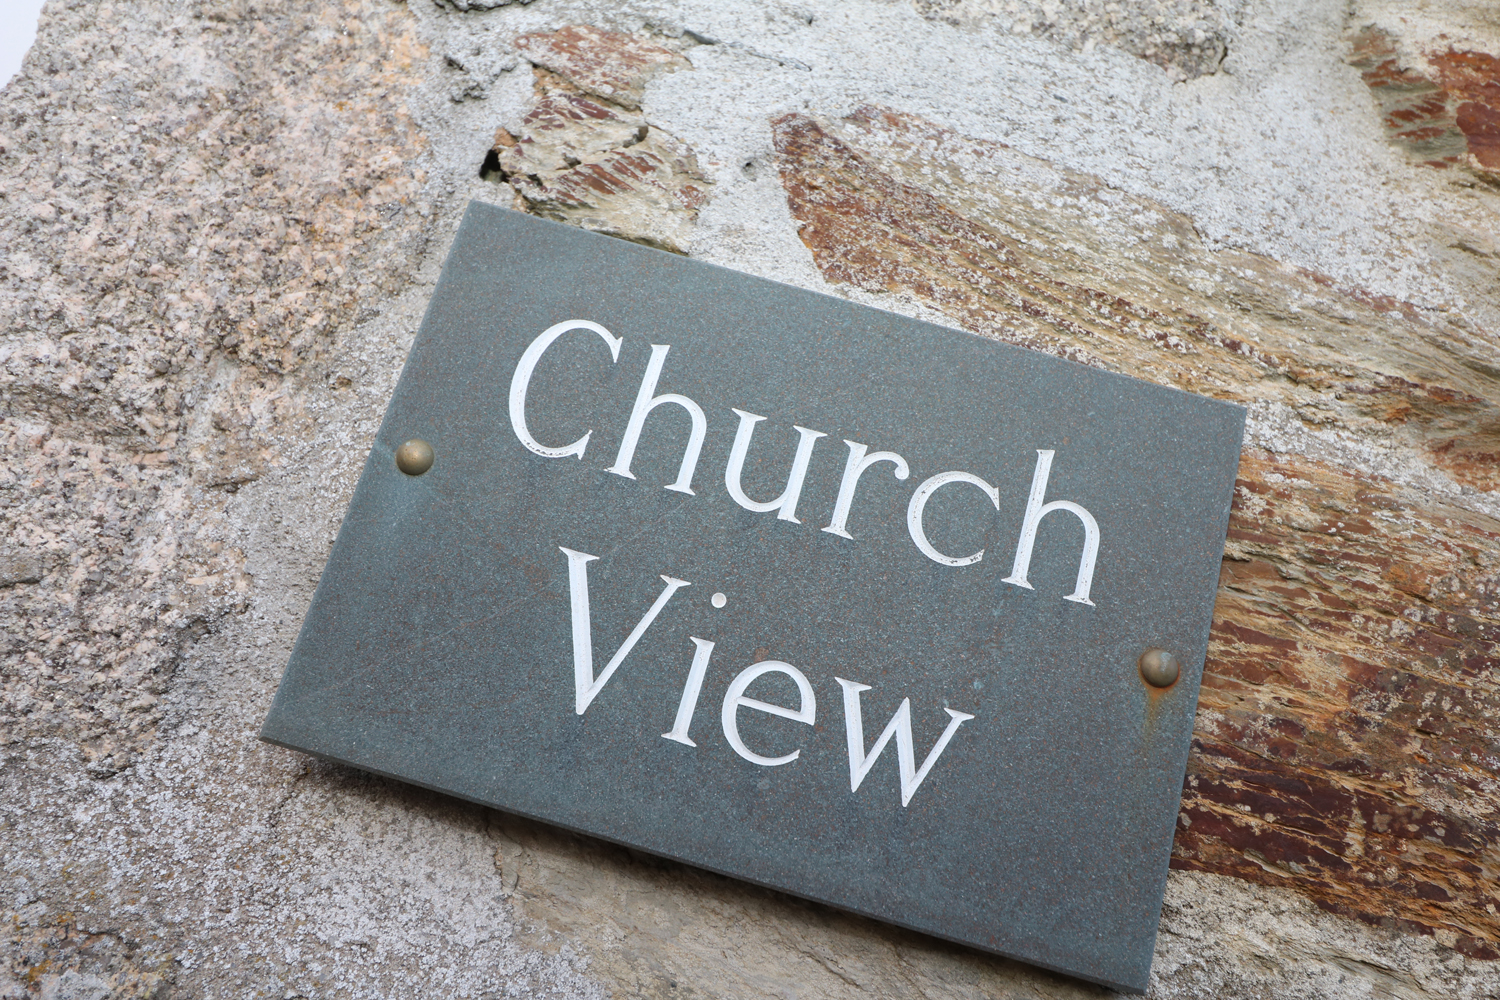 Church View Image 7